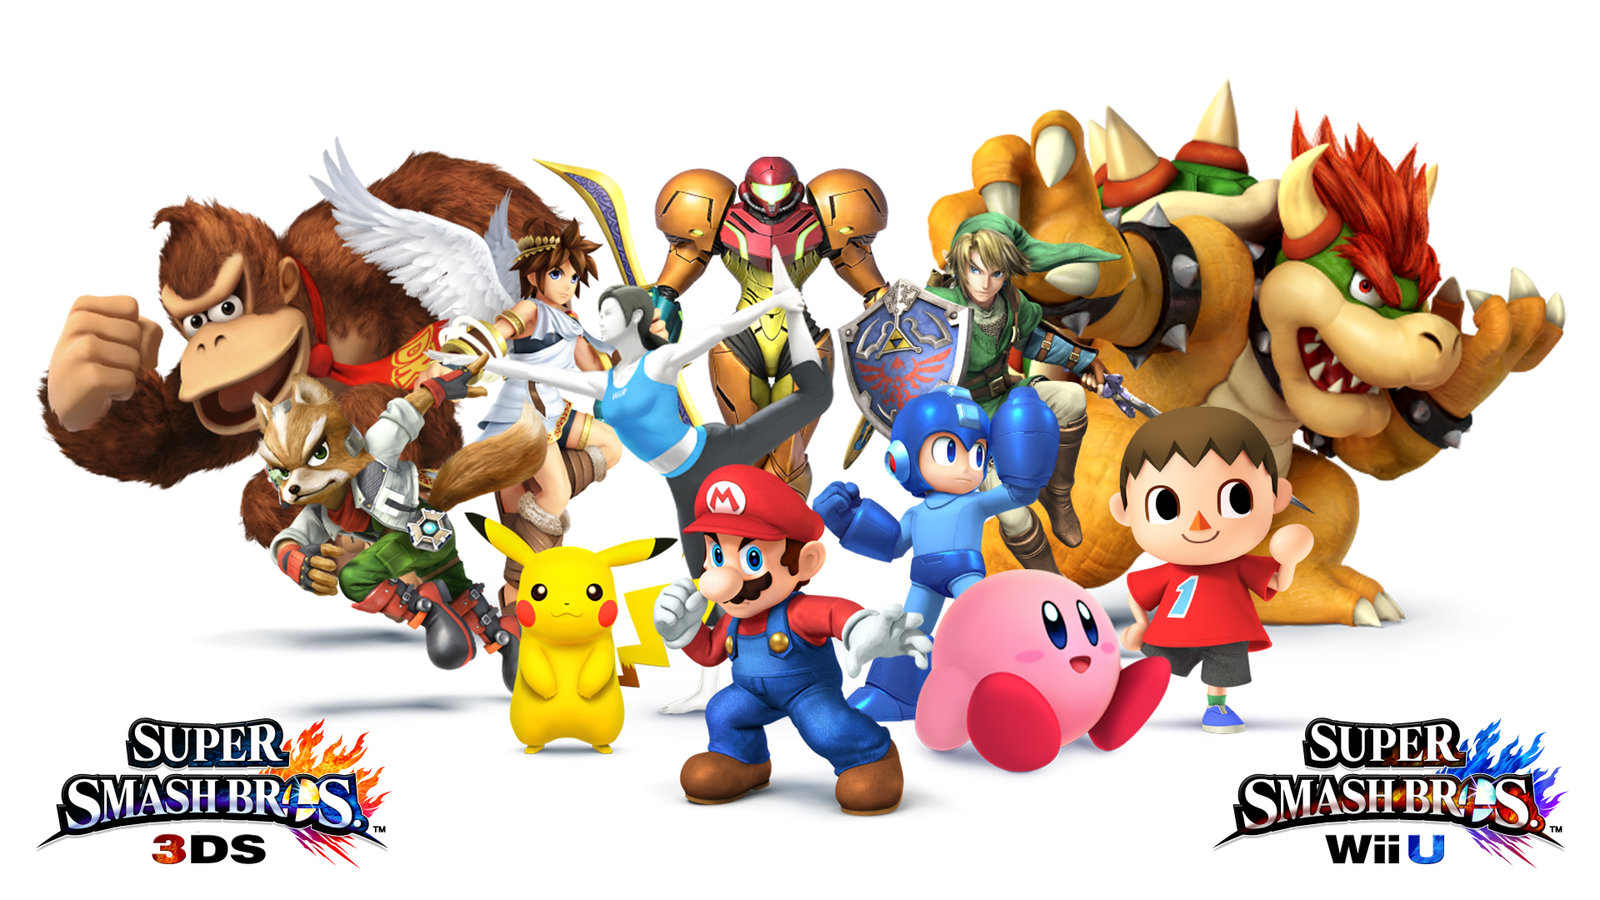 Super Smash Bros 3ds matchmaking platevarmeveksler hekte